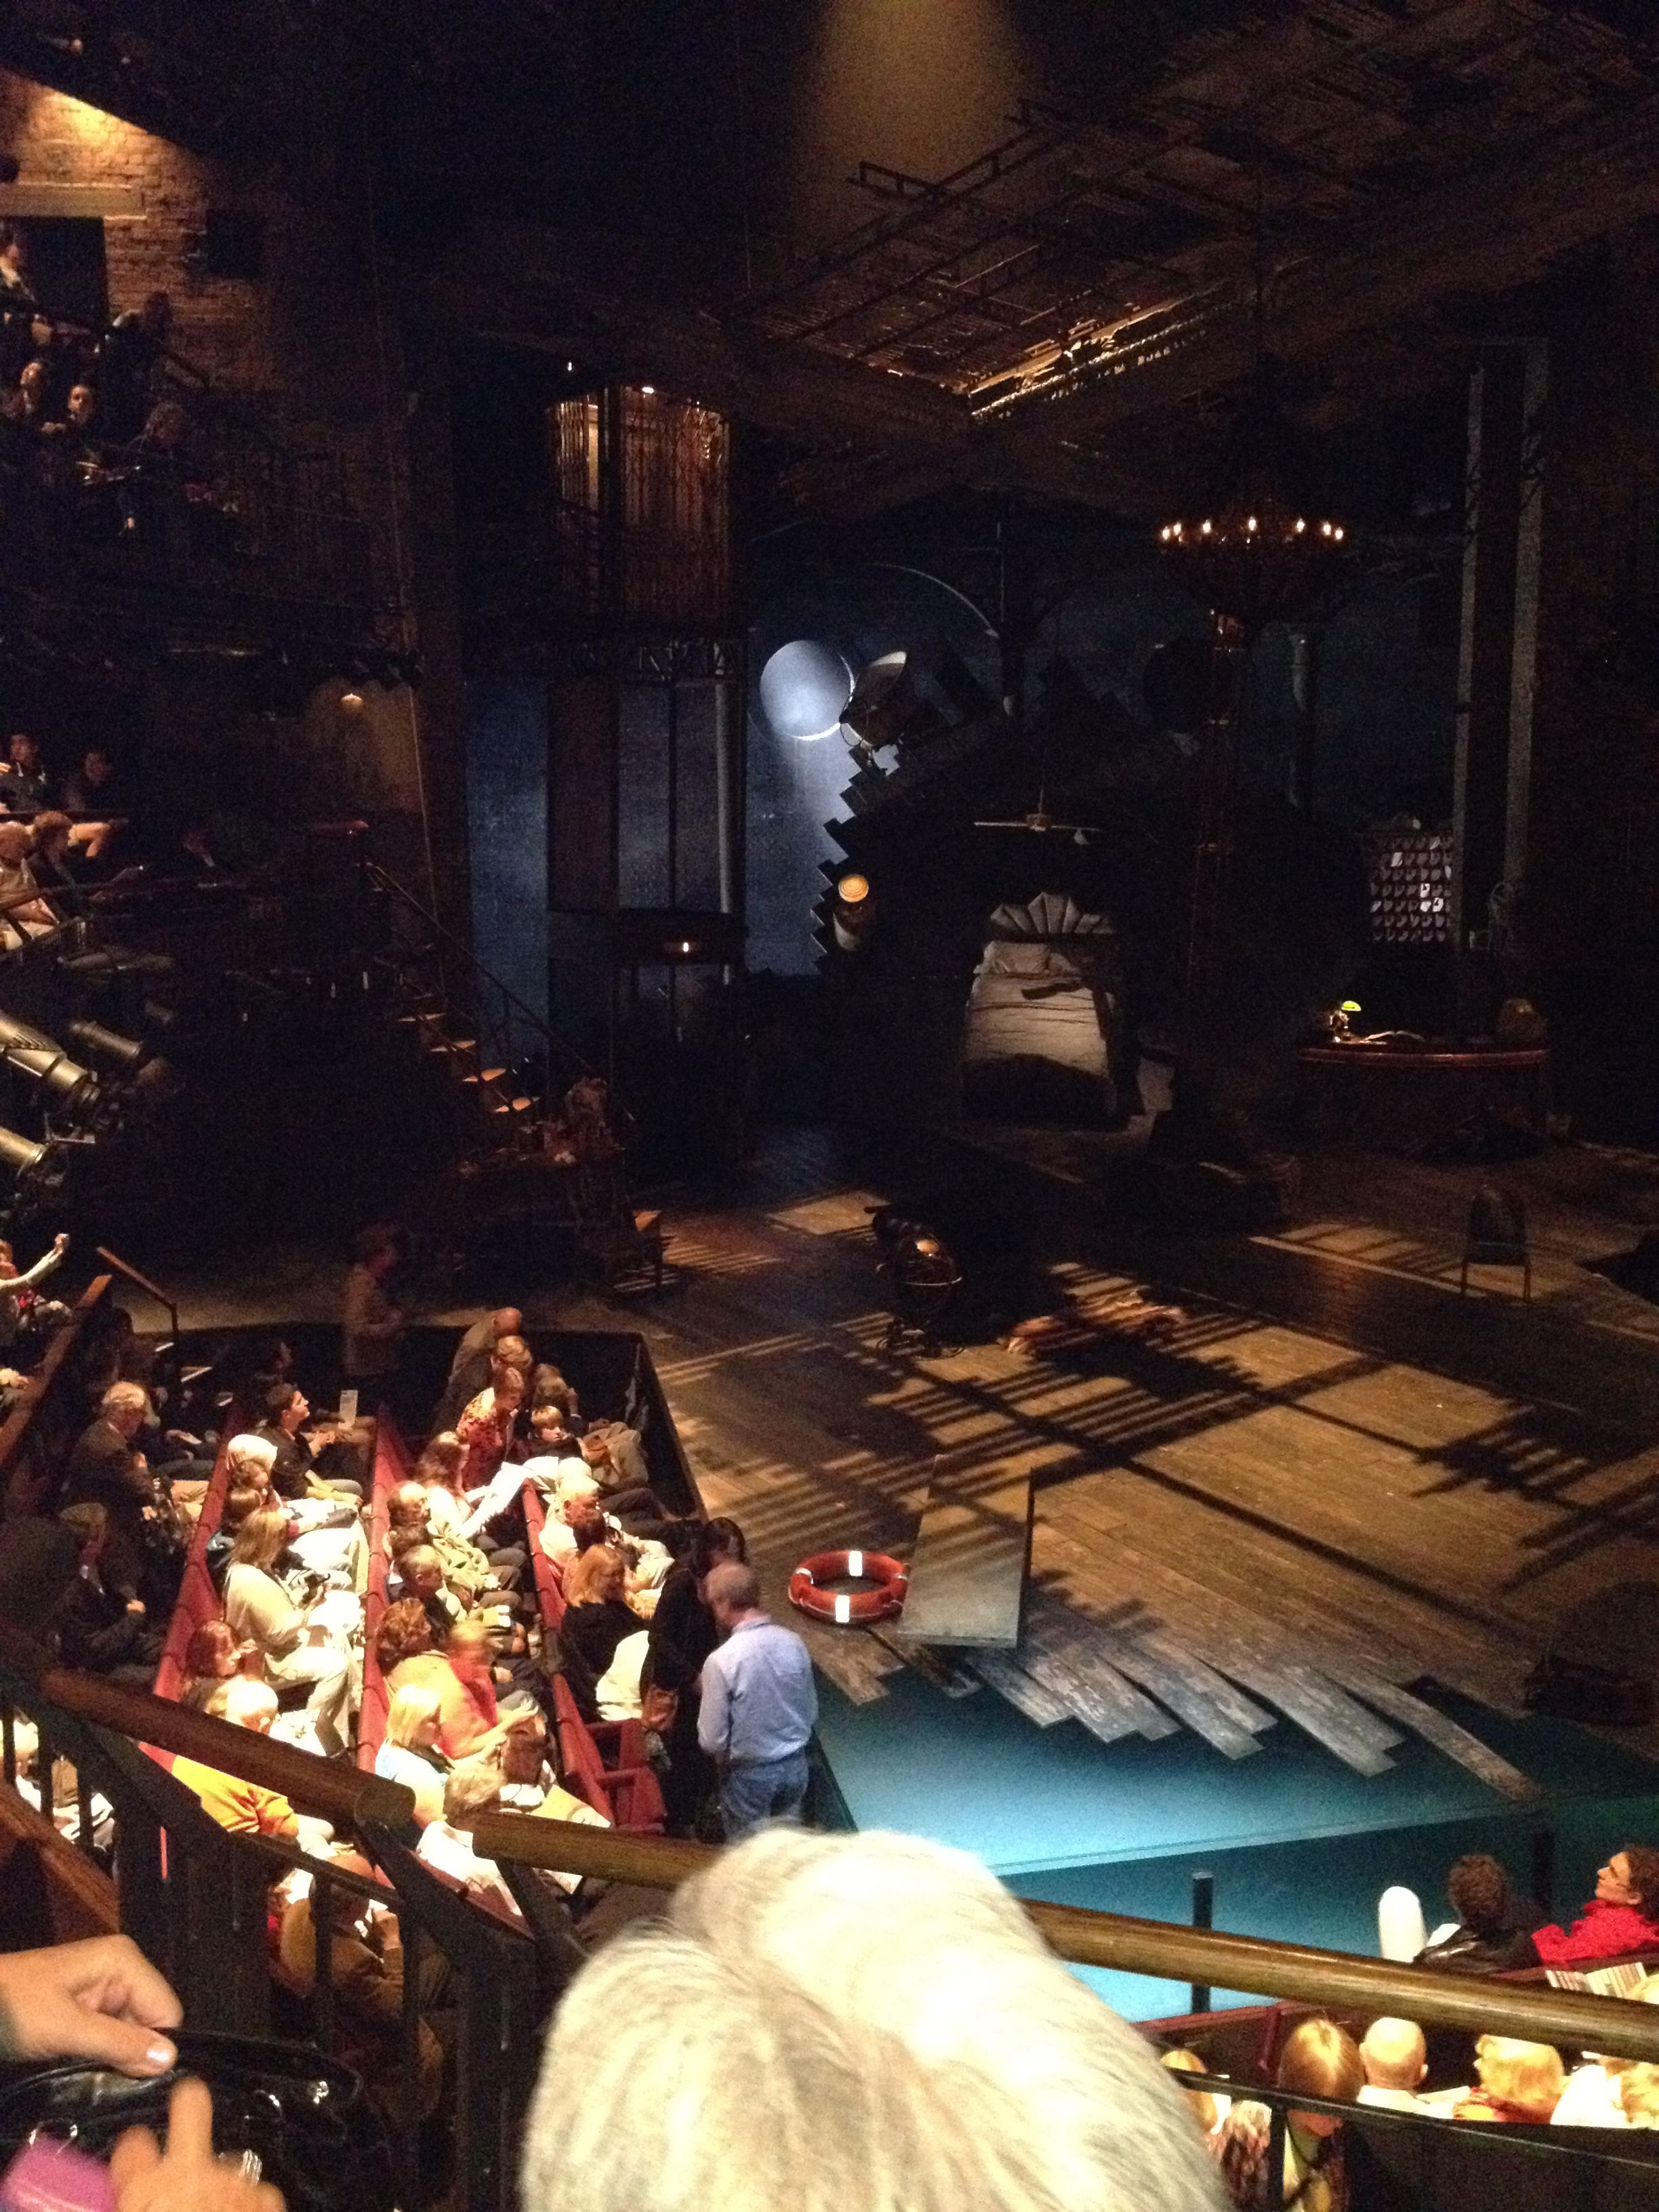 RSC Theatre, Stratford Twelfth Night, 2012 with real